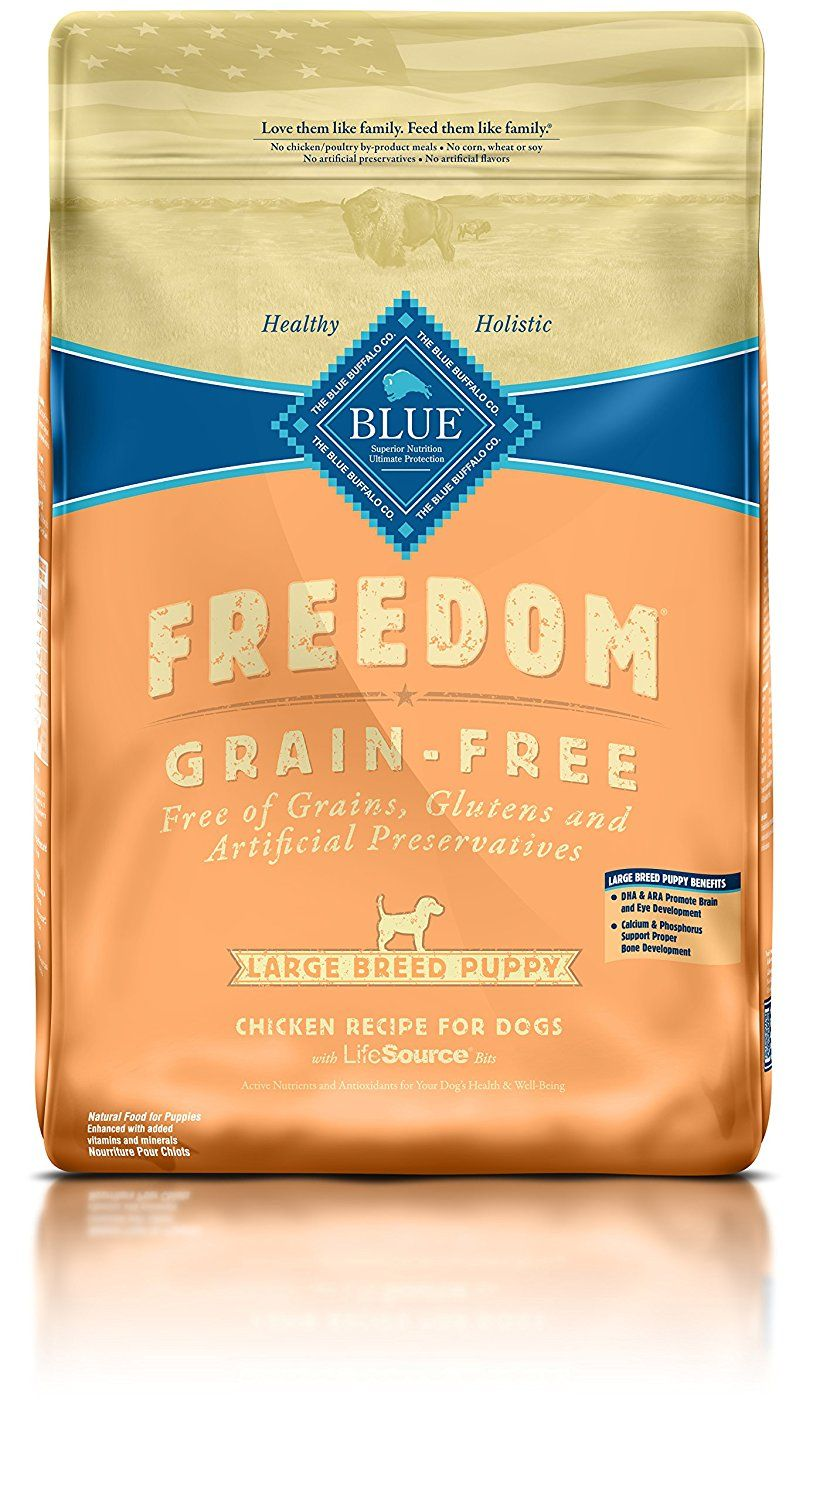 Blue freedom grain free puppy dry dog food for more